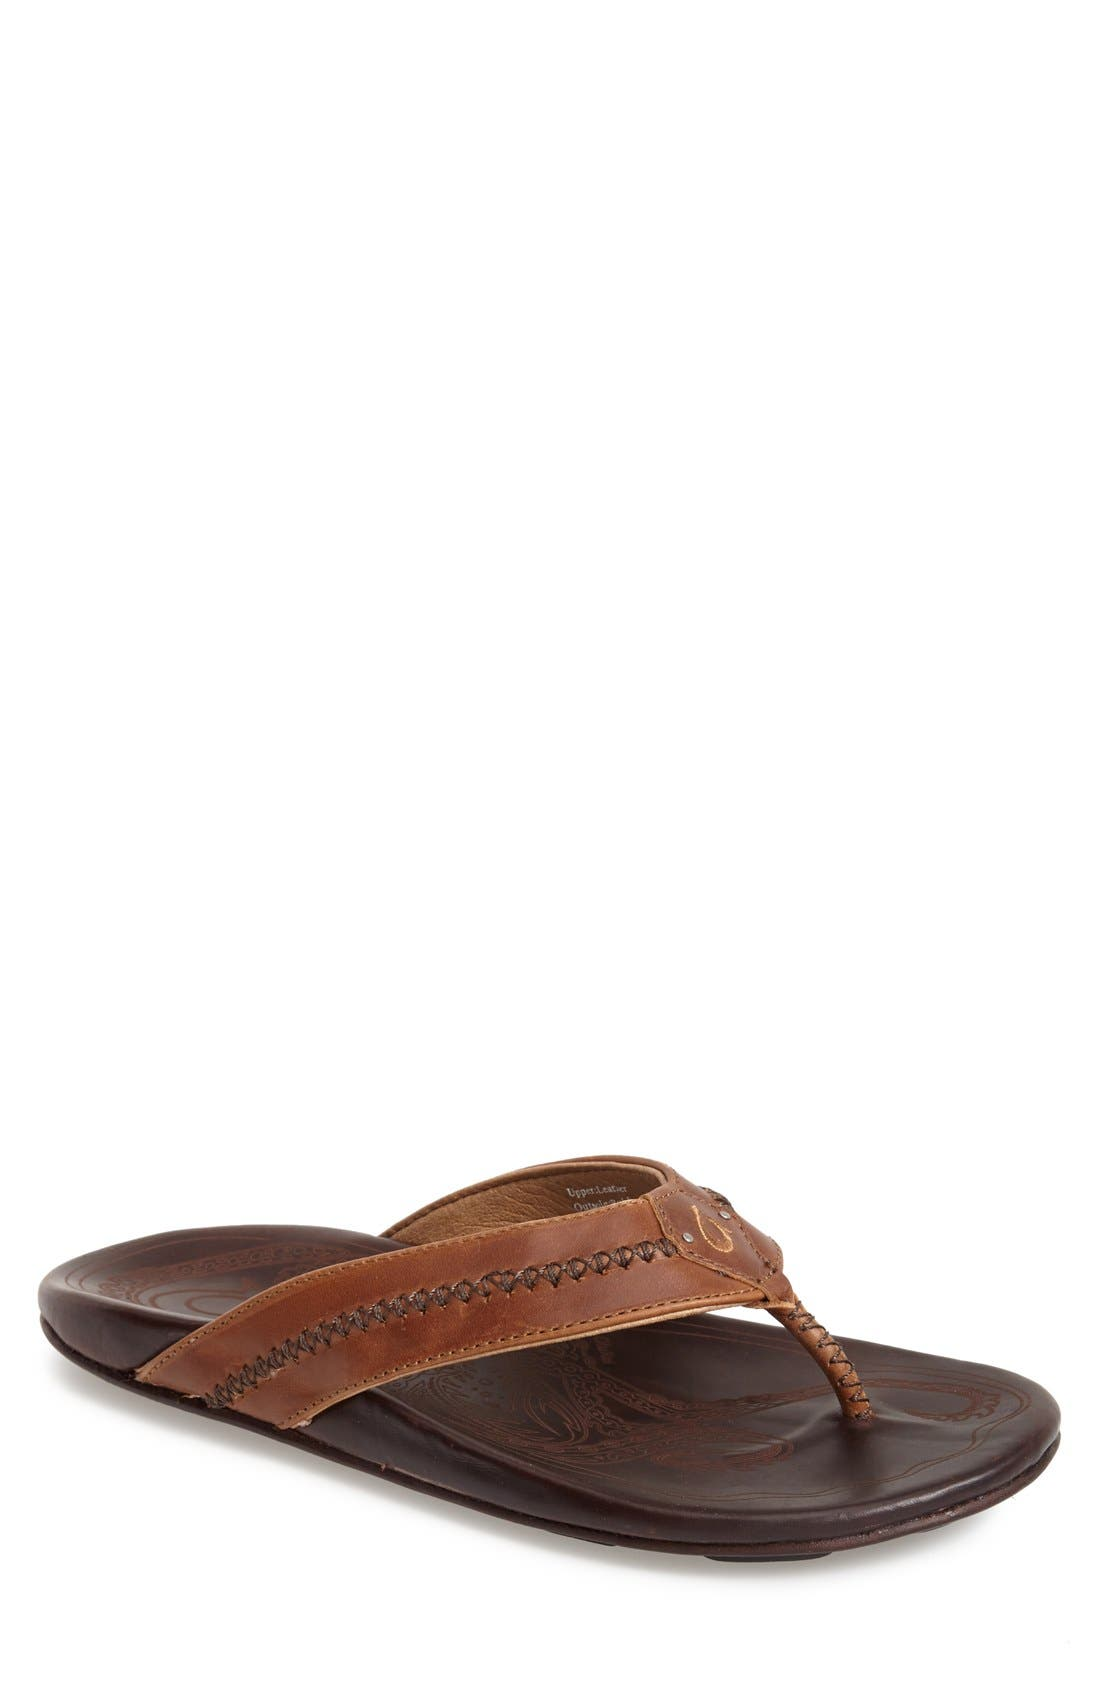 Alternate Image 1 Selected - OluKai 'Mea Ola' Flip Flop (Men)